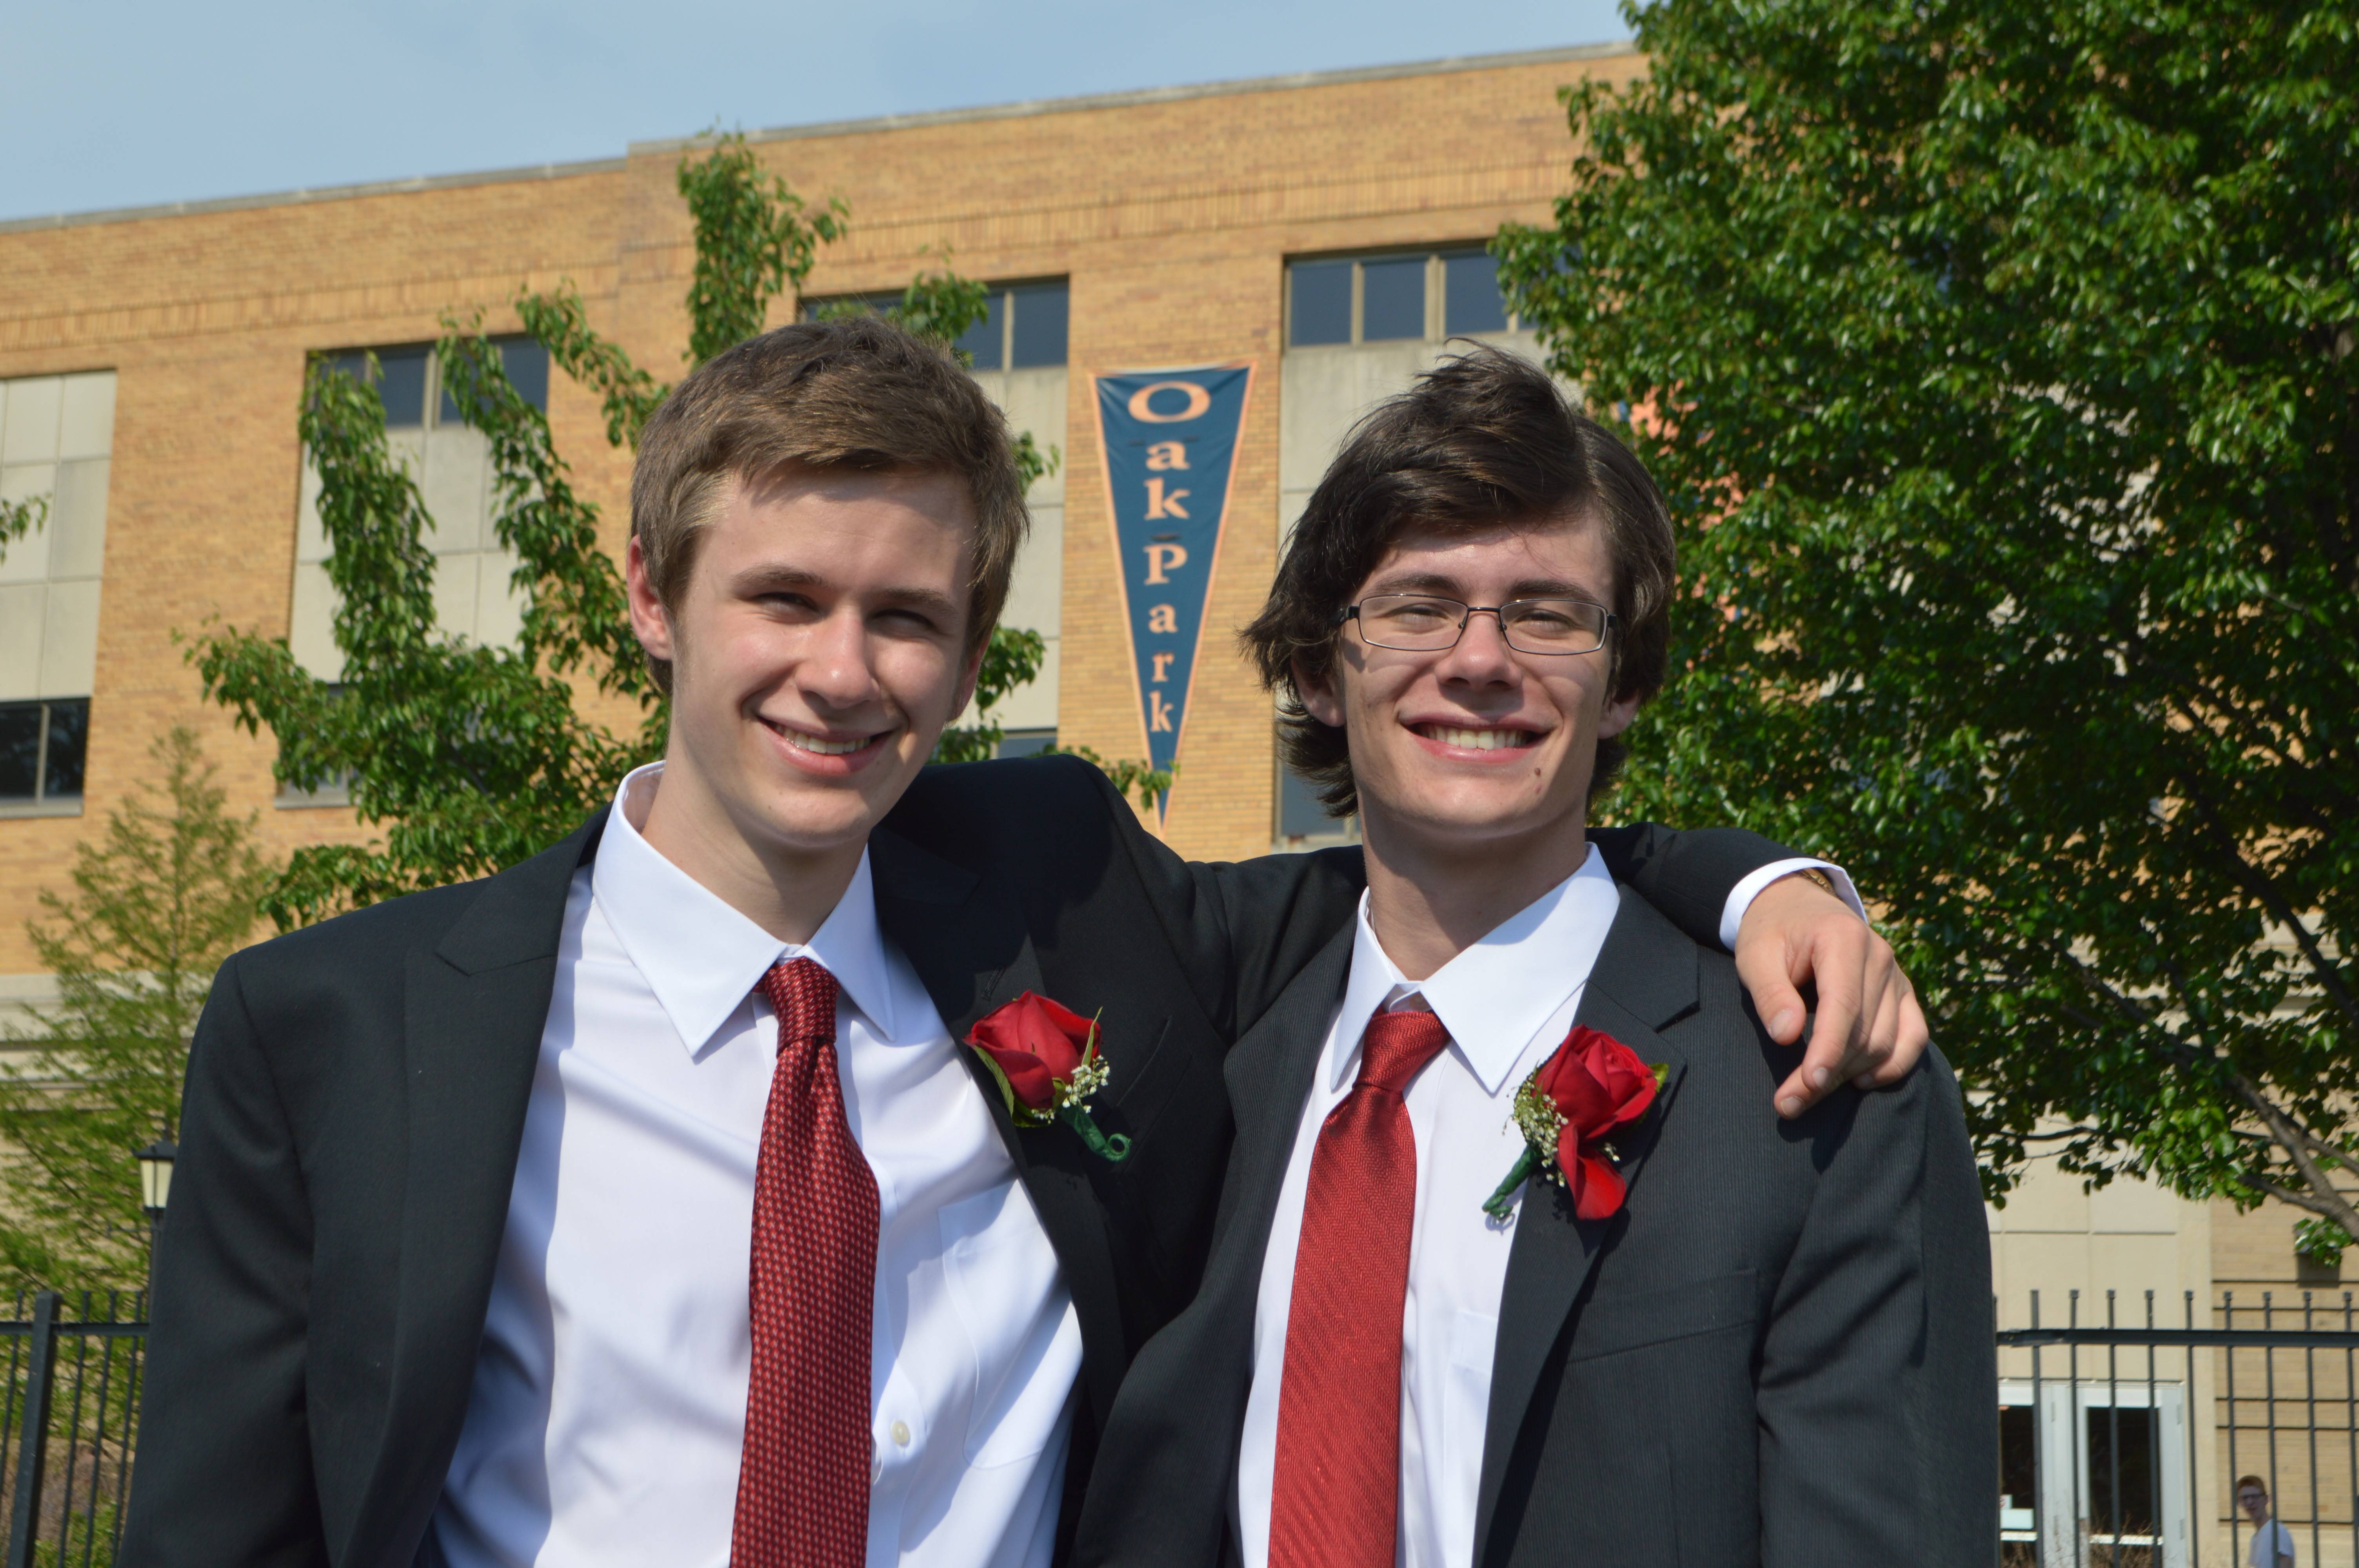 On the stadium field after their commencement, high school graduates Ross, left, and Ben Constable acquiesce to their parents' request for a photograph. Tradition at their school requires suits instead of caps and gowns.